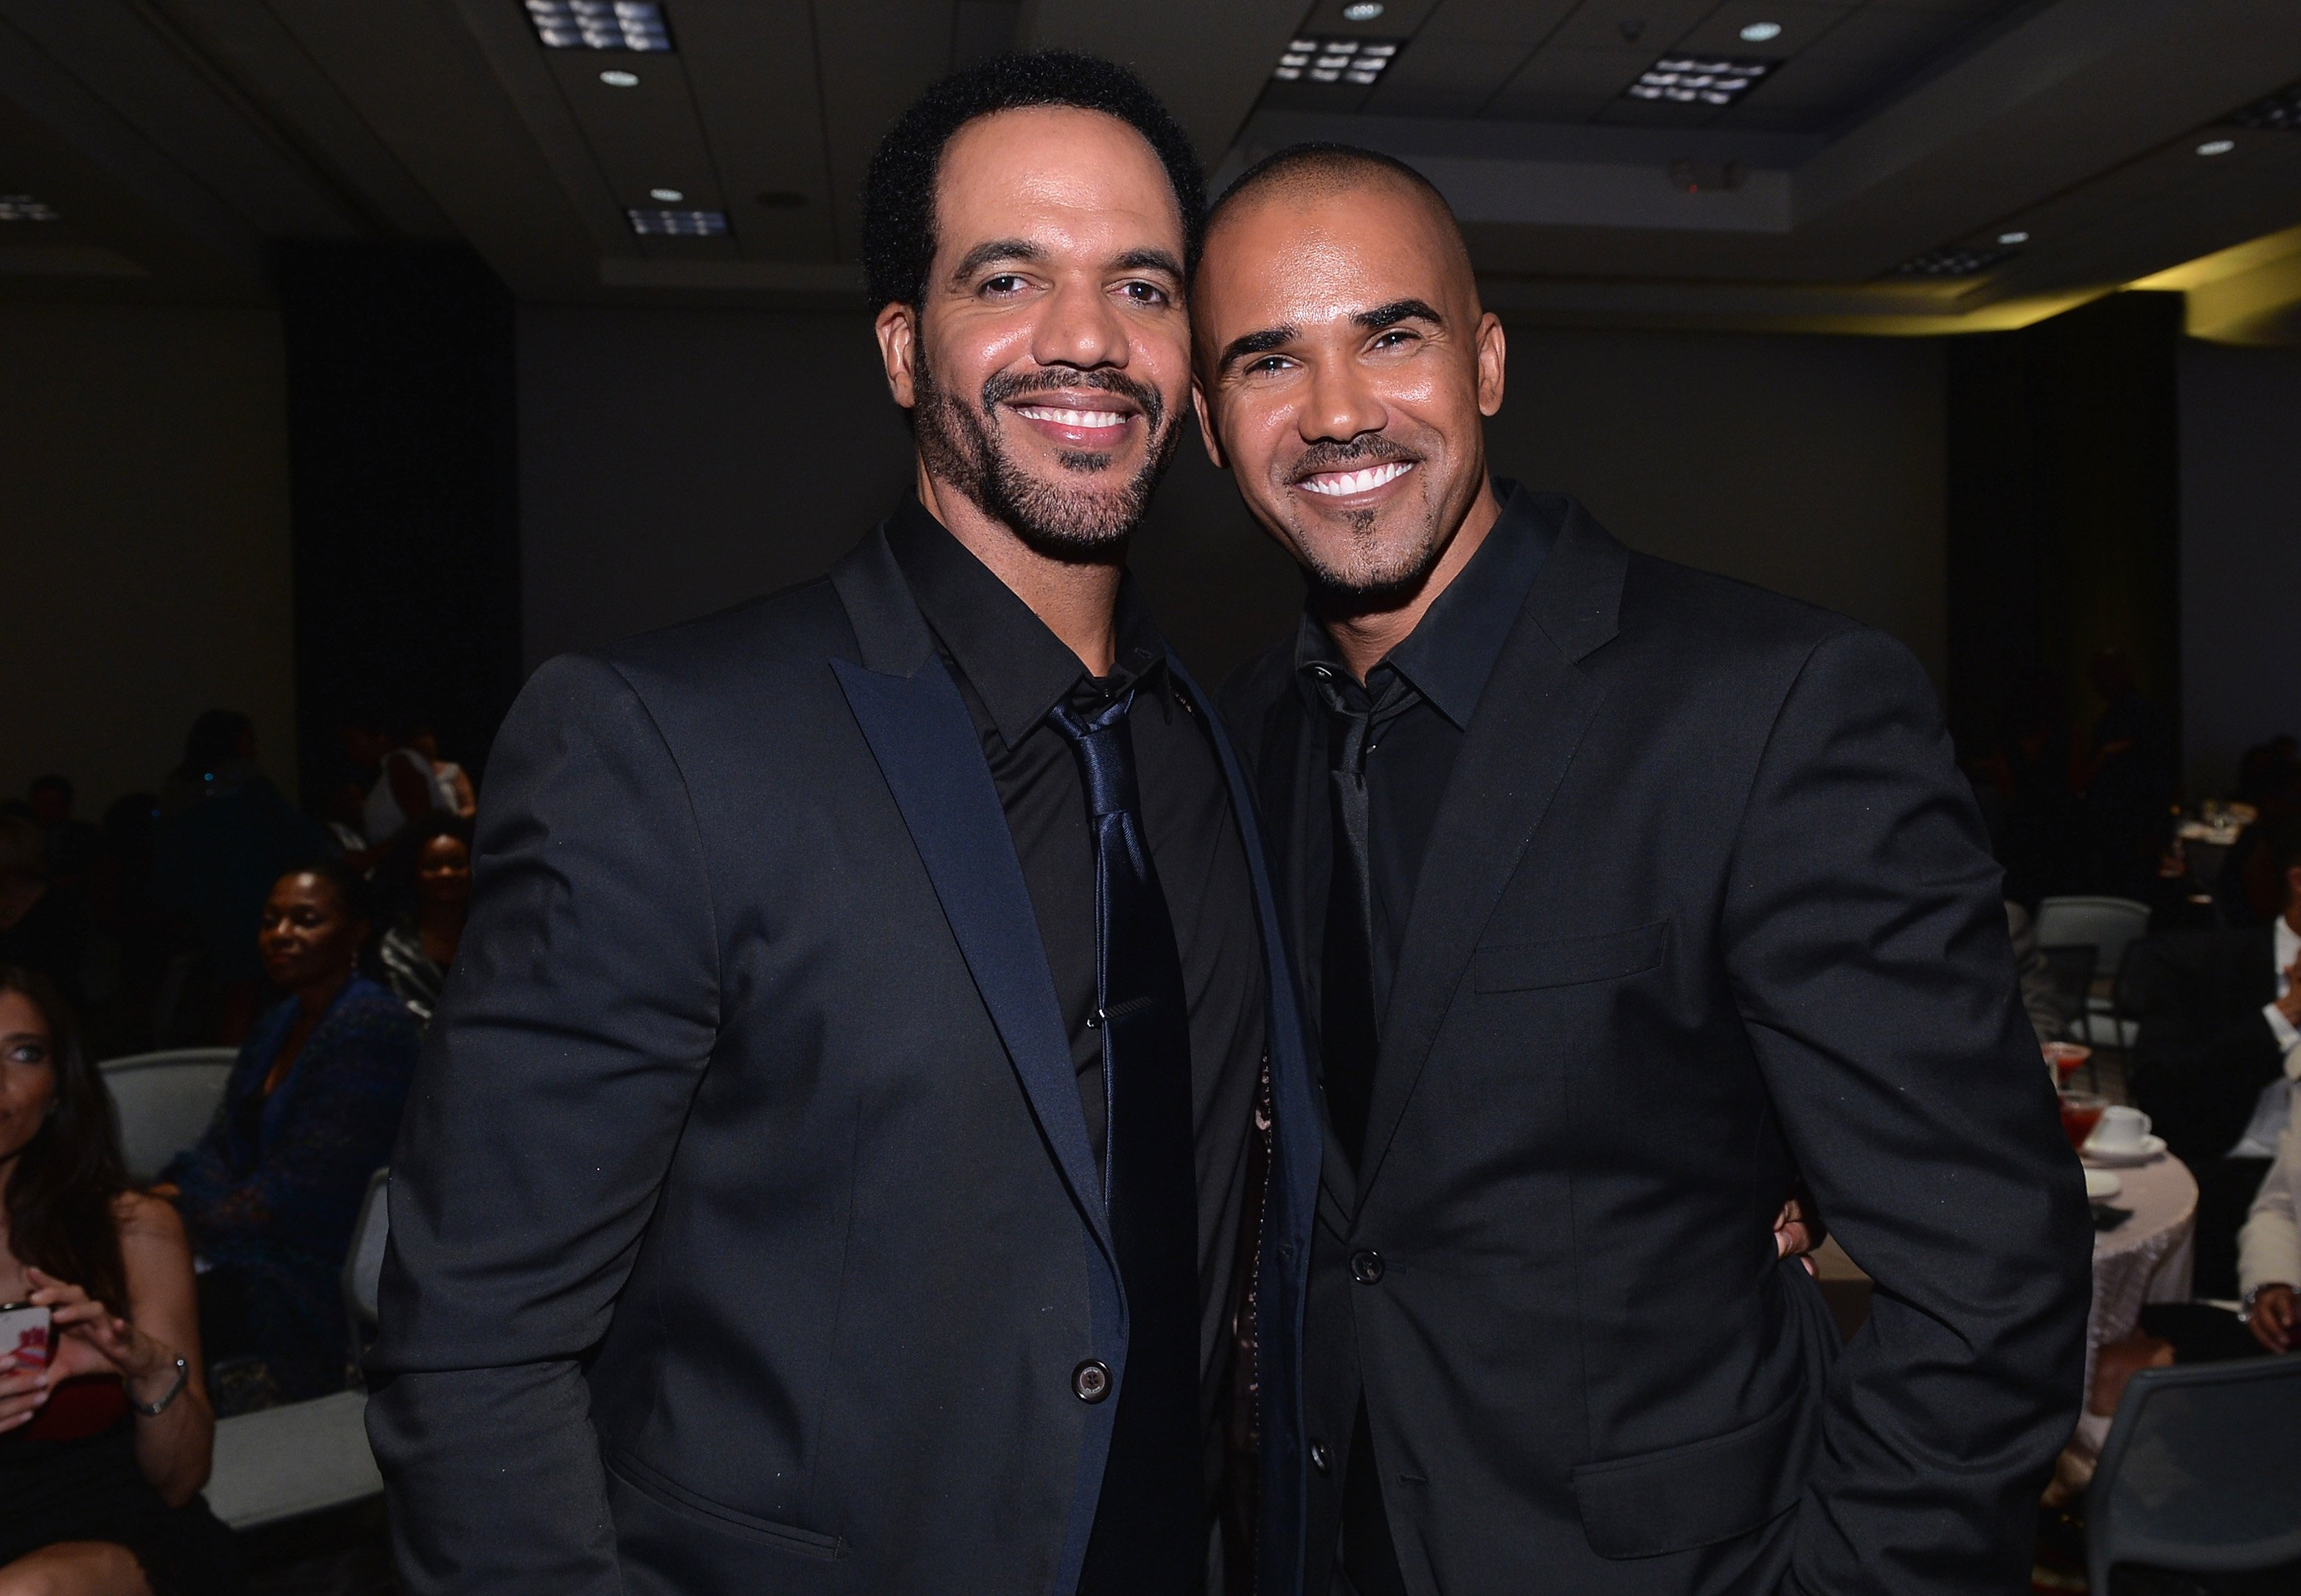 Actors Kristoff St. John and Shemar Moore attend the 45th NAACP Awards Non-Televised Awards Ceremony at the Pasadena Civic Auditorium on February 21, 2014 in Pasadena, California / Source: Getty Images